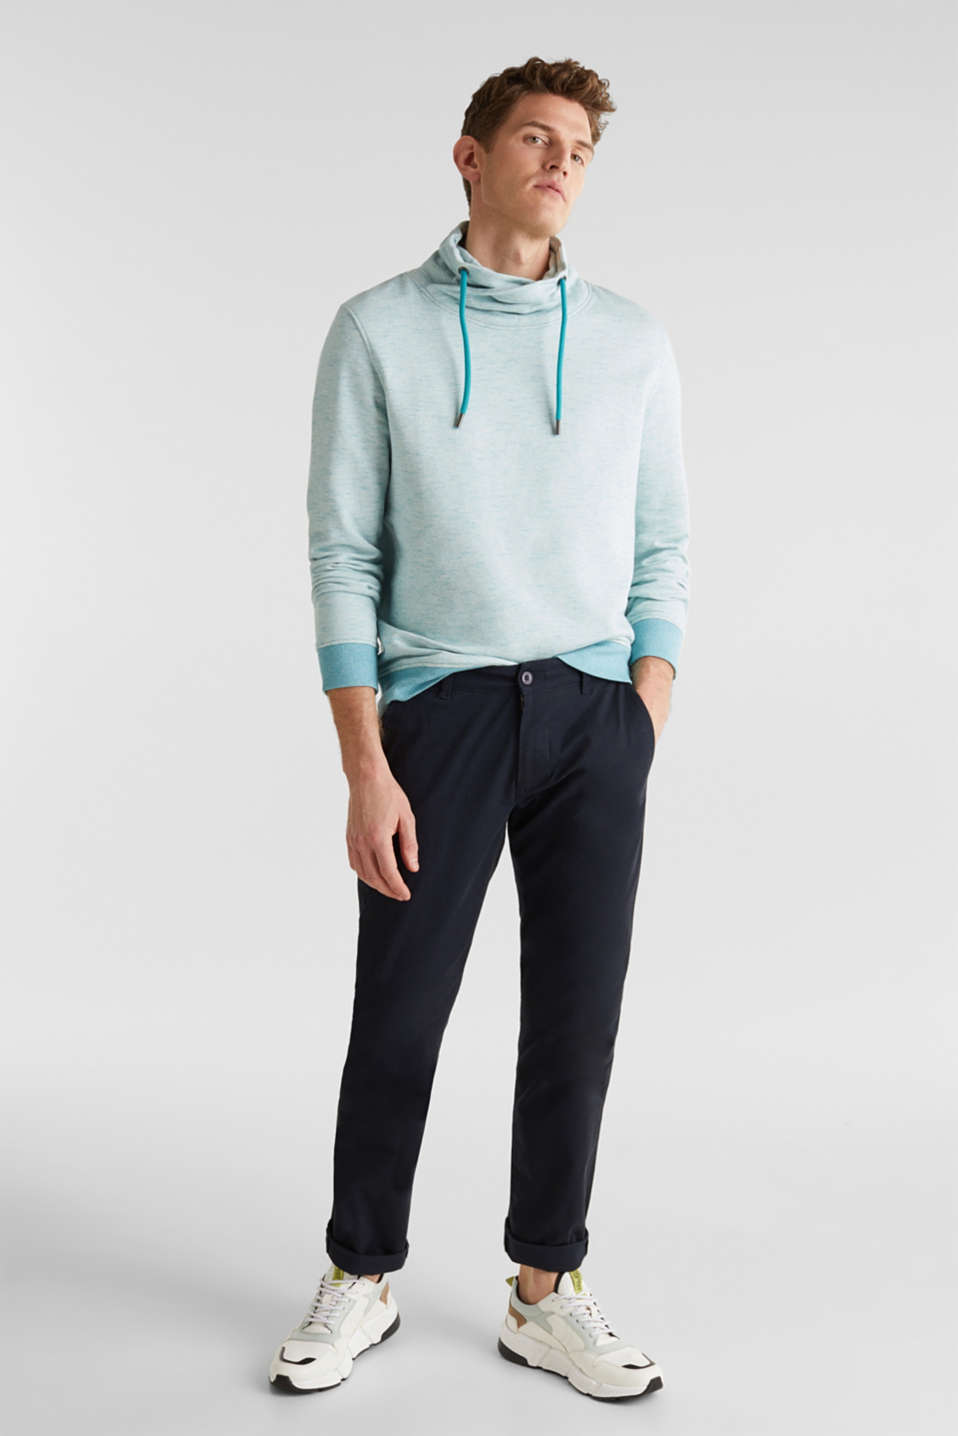 Textured jumper with a drawstring collar, TEAL BLUE 5, detail image number 1